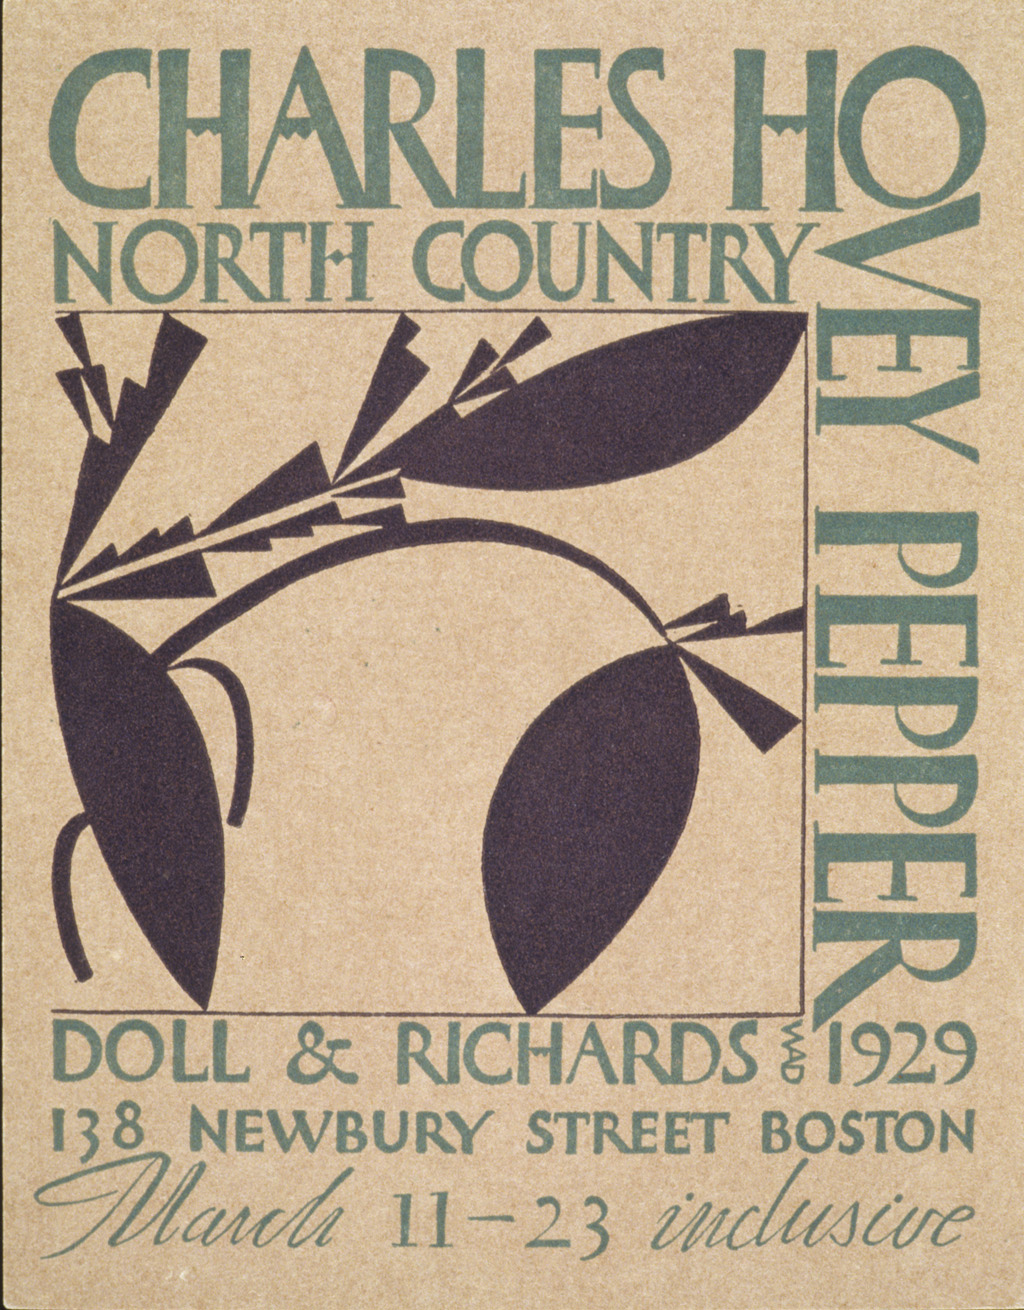 North Country. Charles Hovey Pepper. 1929. Announcement design by W.A. Dwiggins.